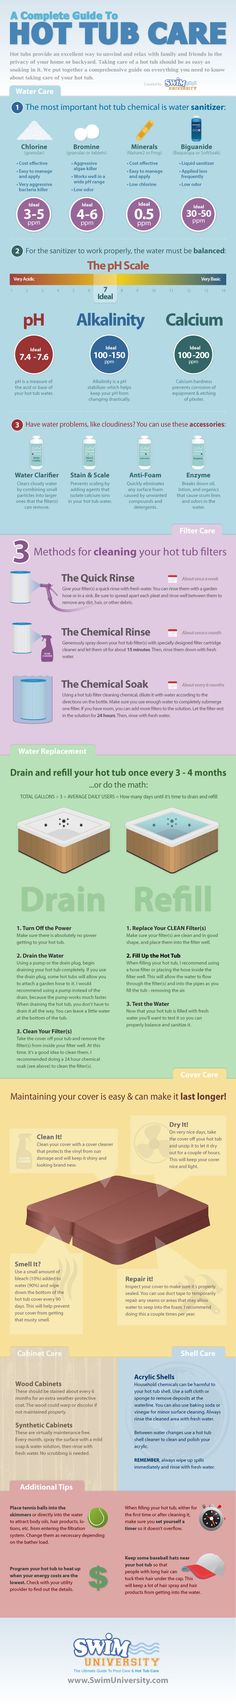 Hot Tub & Spa Care Info-graphic. how to take care of your hot tub spa. Here is the link: http://walkinshowers.org/10-best-soft-tub-reviews.html